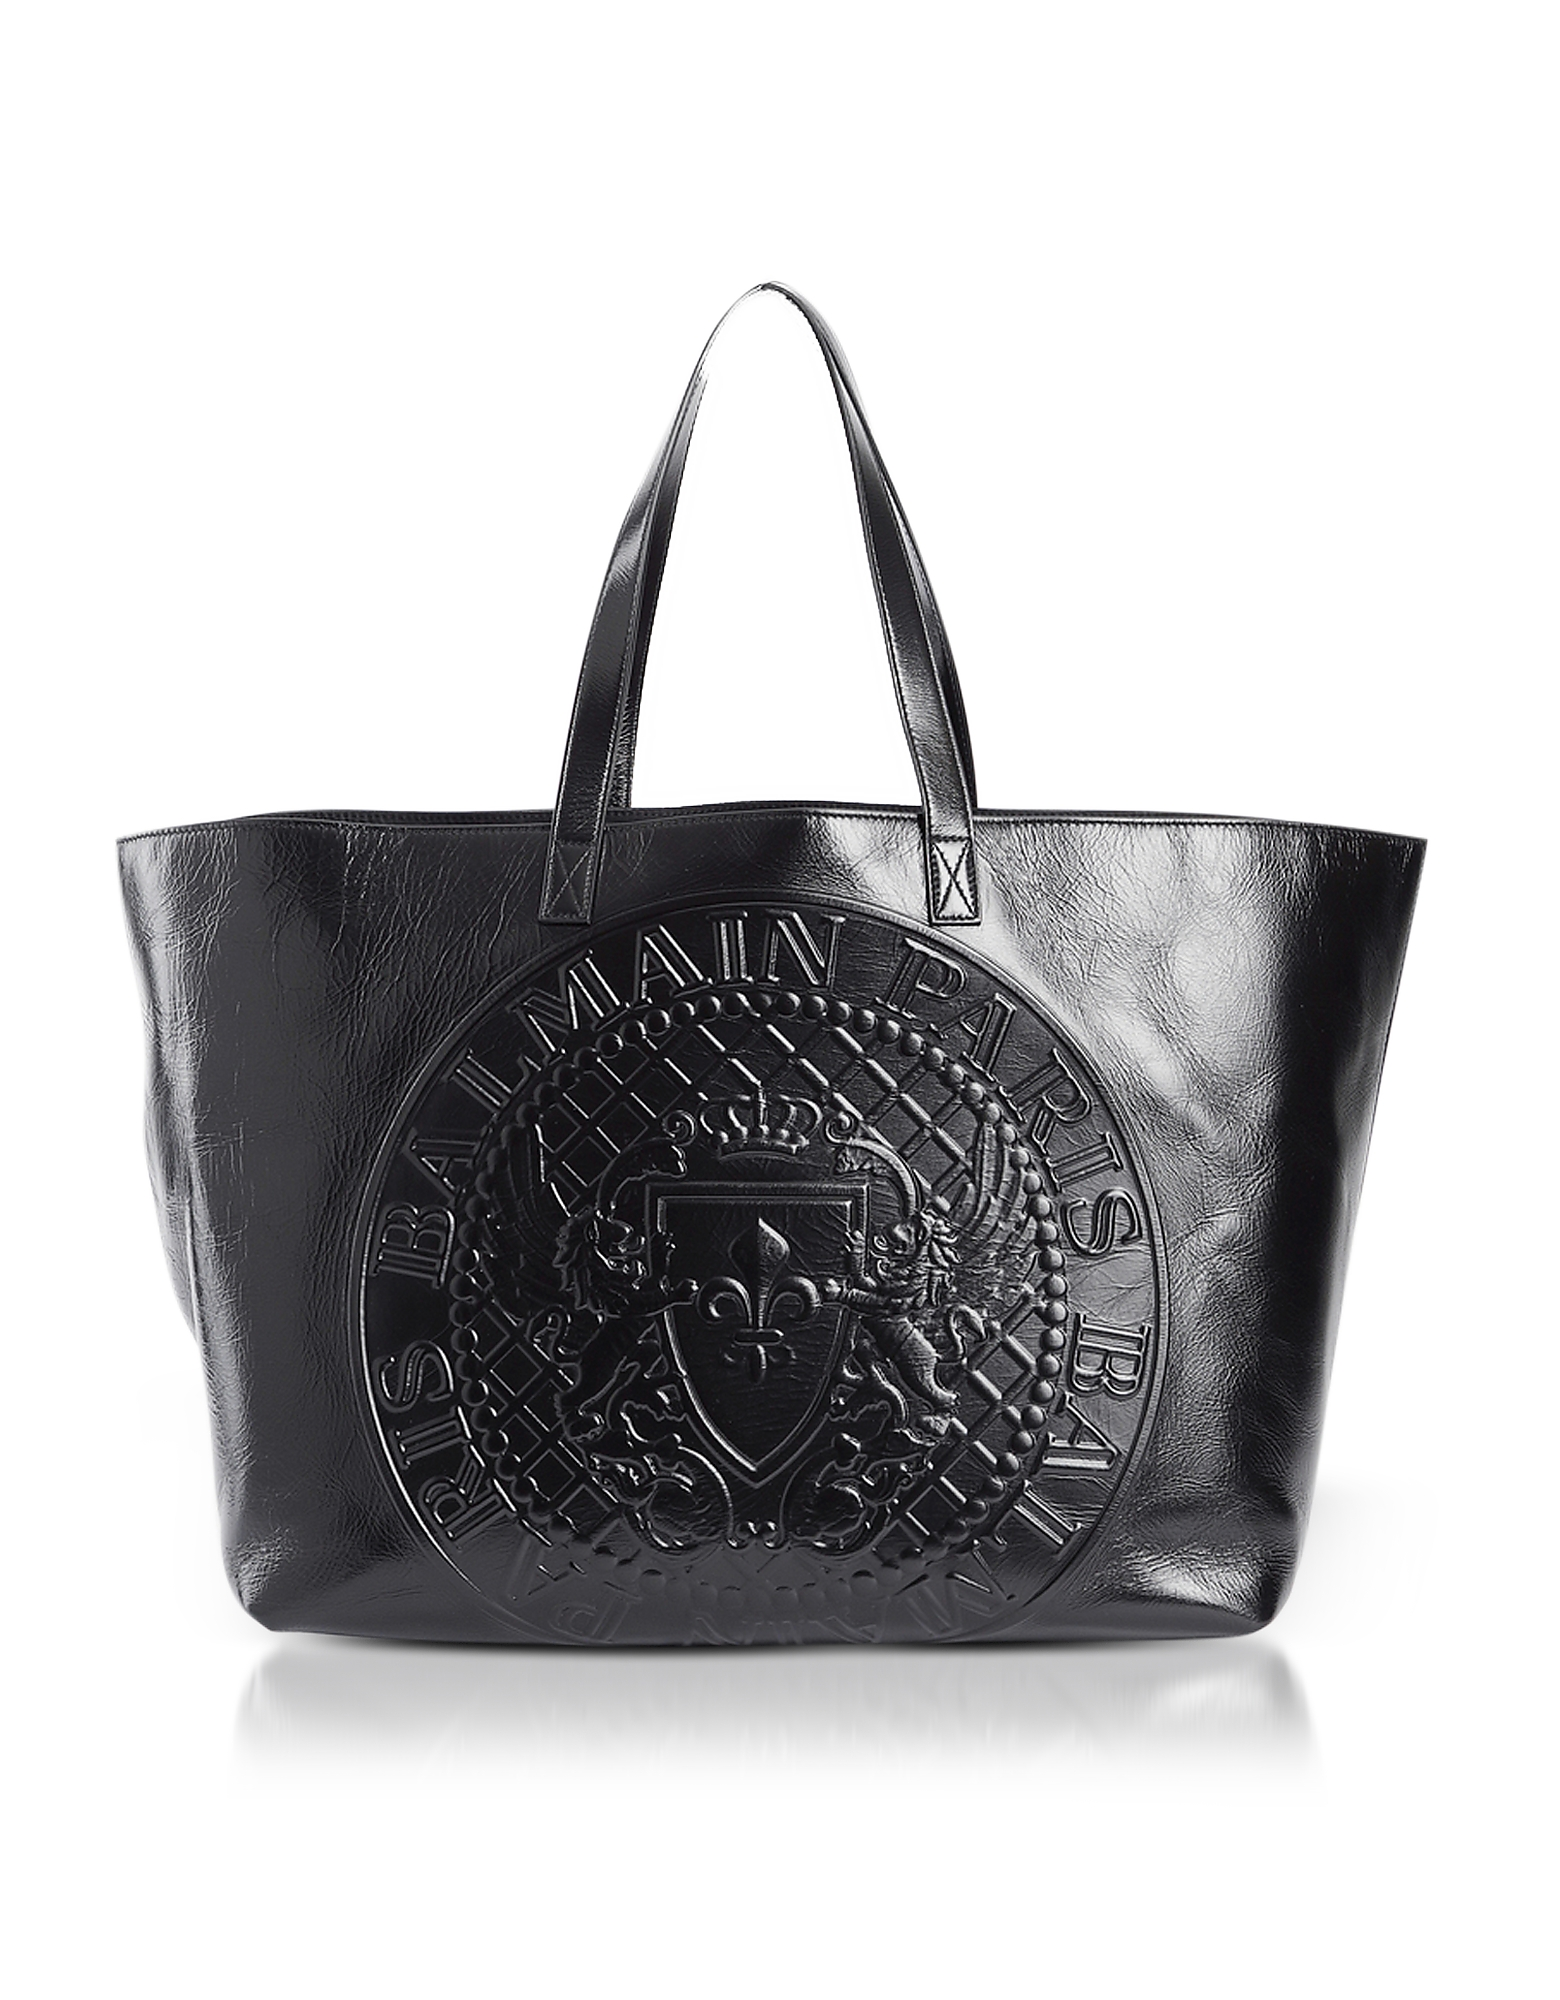 Balmain Handbags, Black Leather Signature Shopping Bag